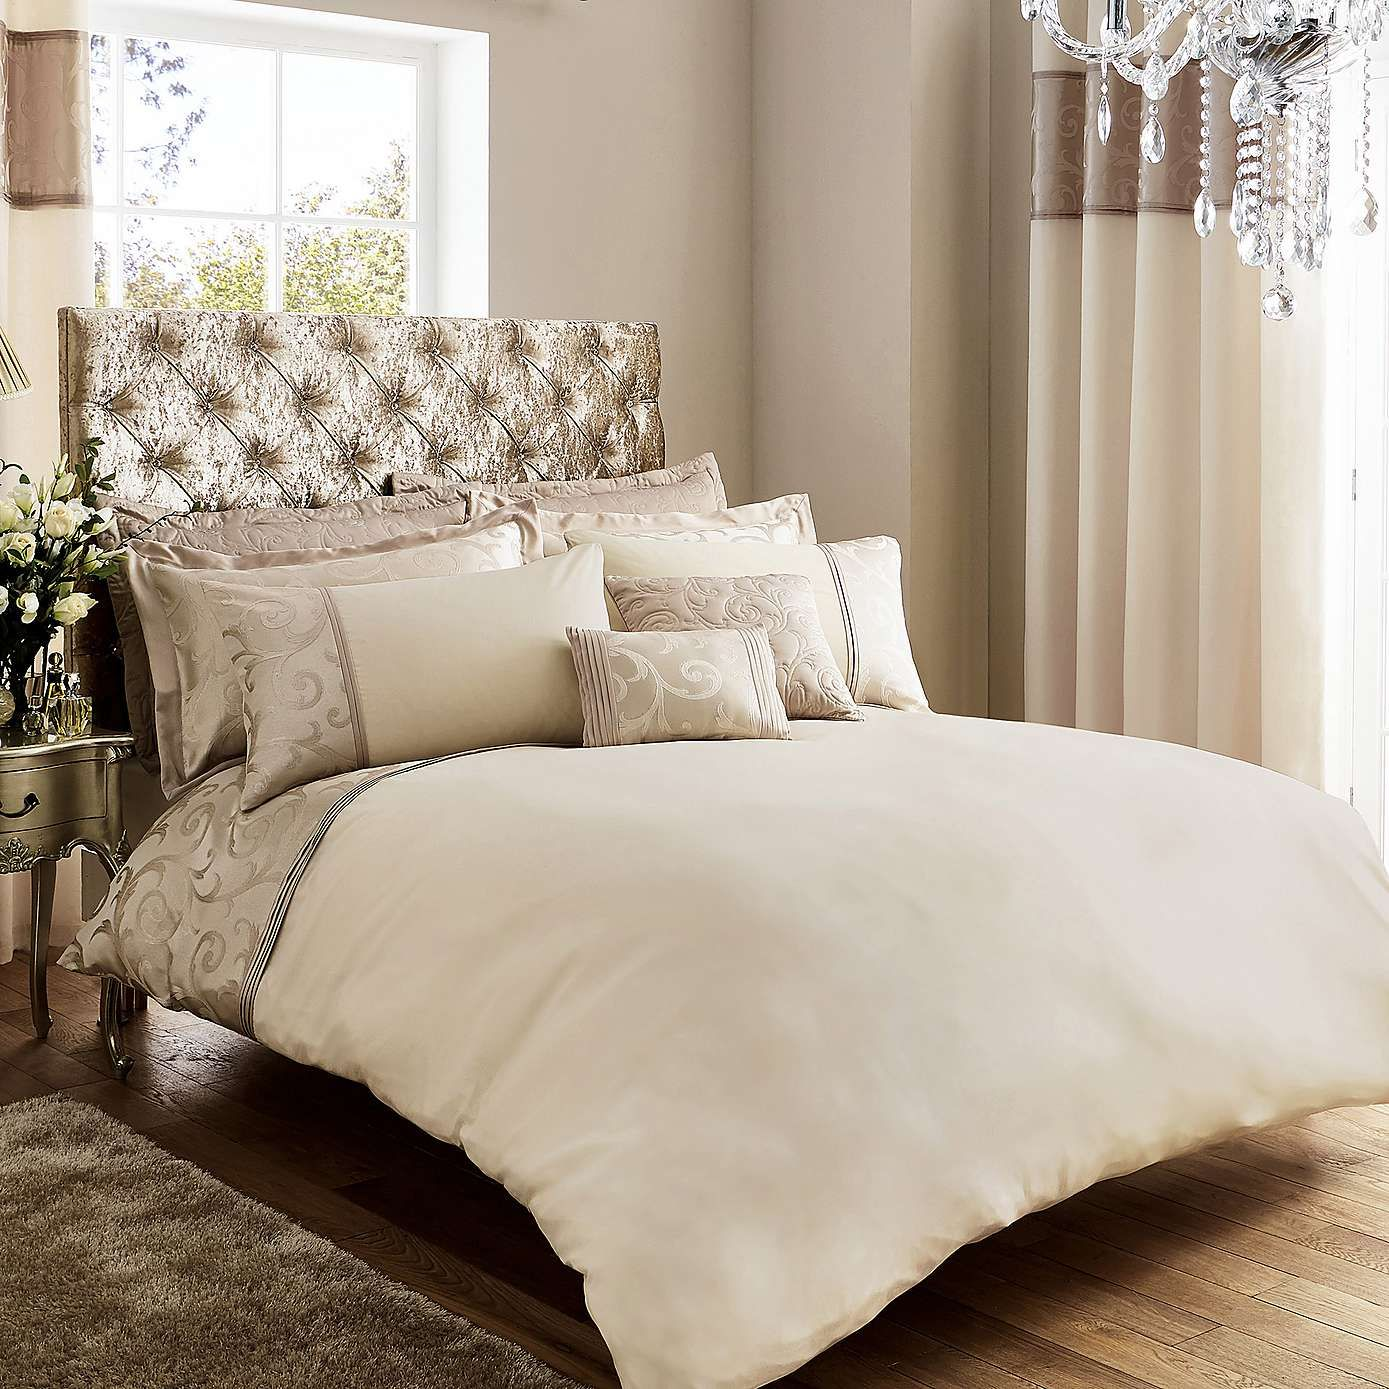 Bardot Cream Duvet Cover and Pillowcase